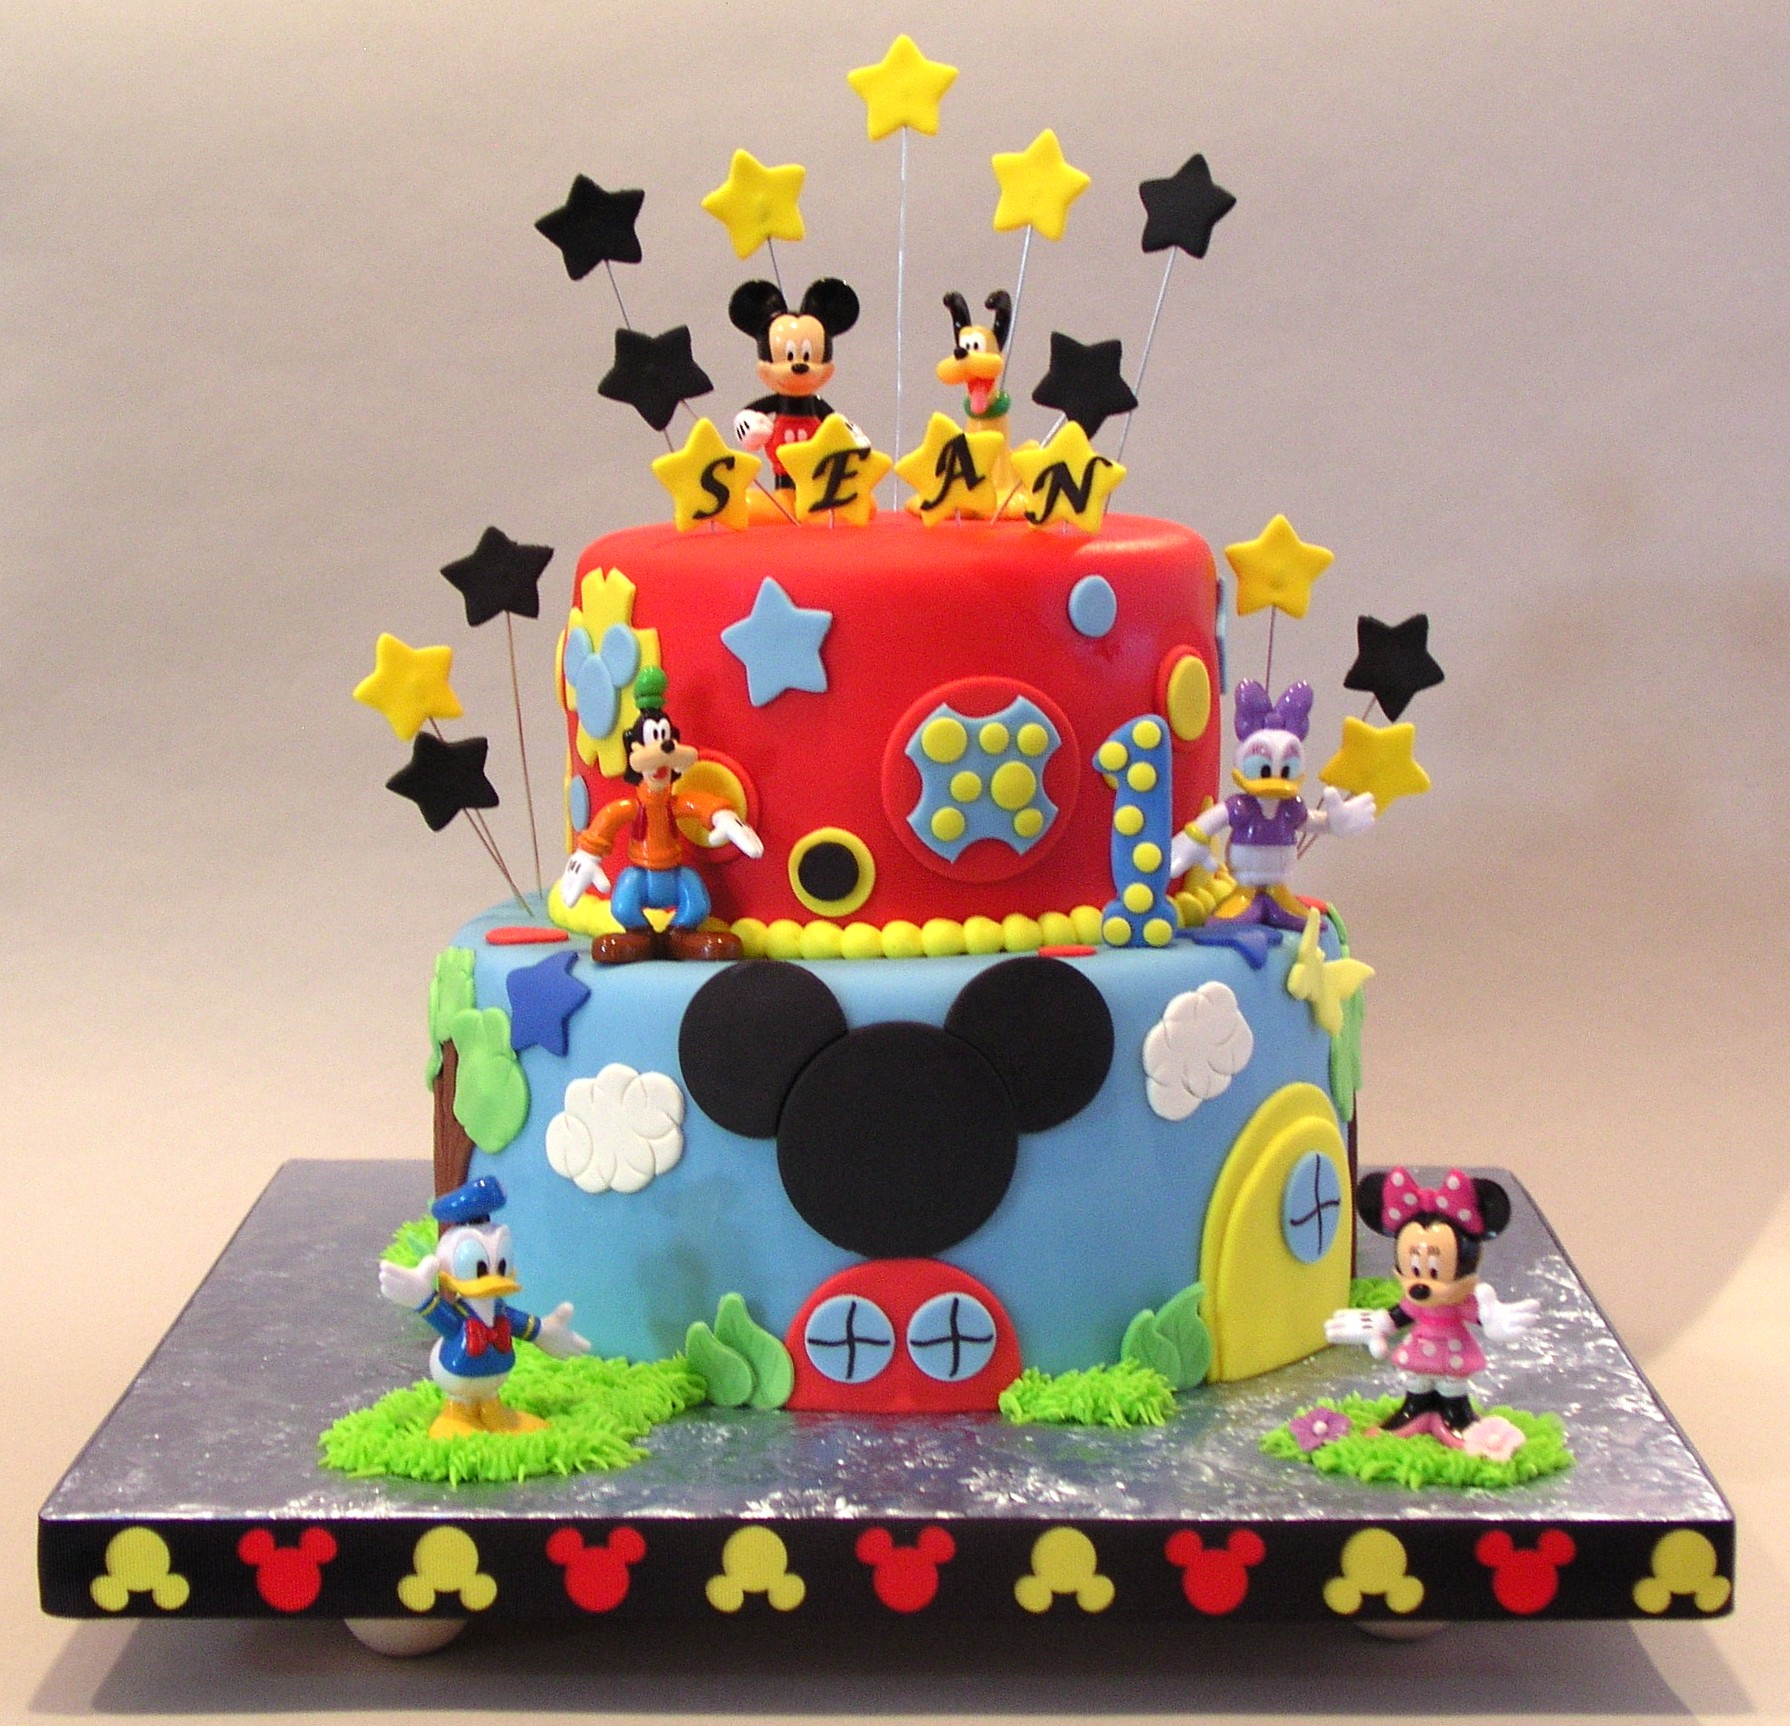 Torta topolino 10 ricette dalla casa di topolino disney for Piani casa ranch con 3 box auto